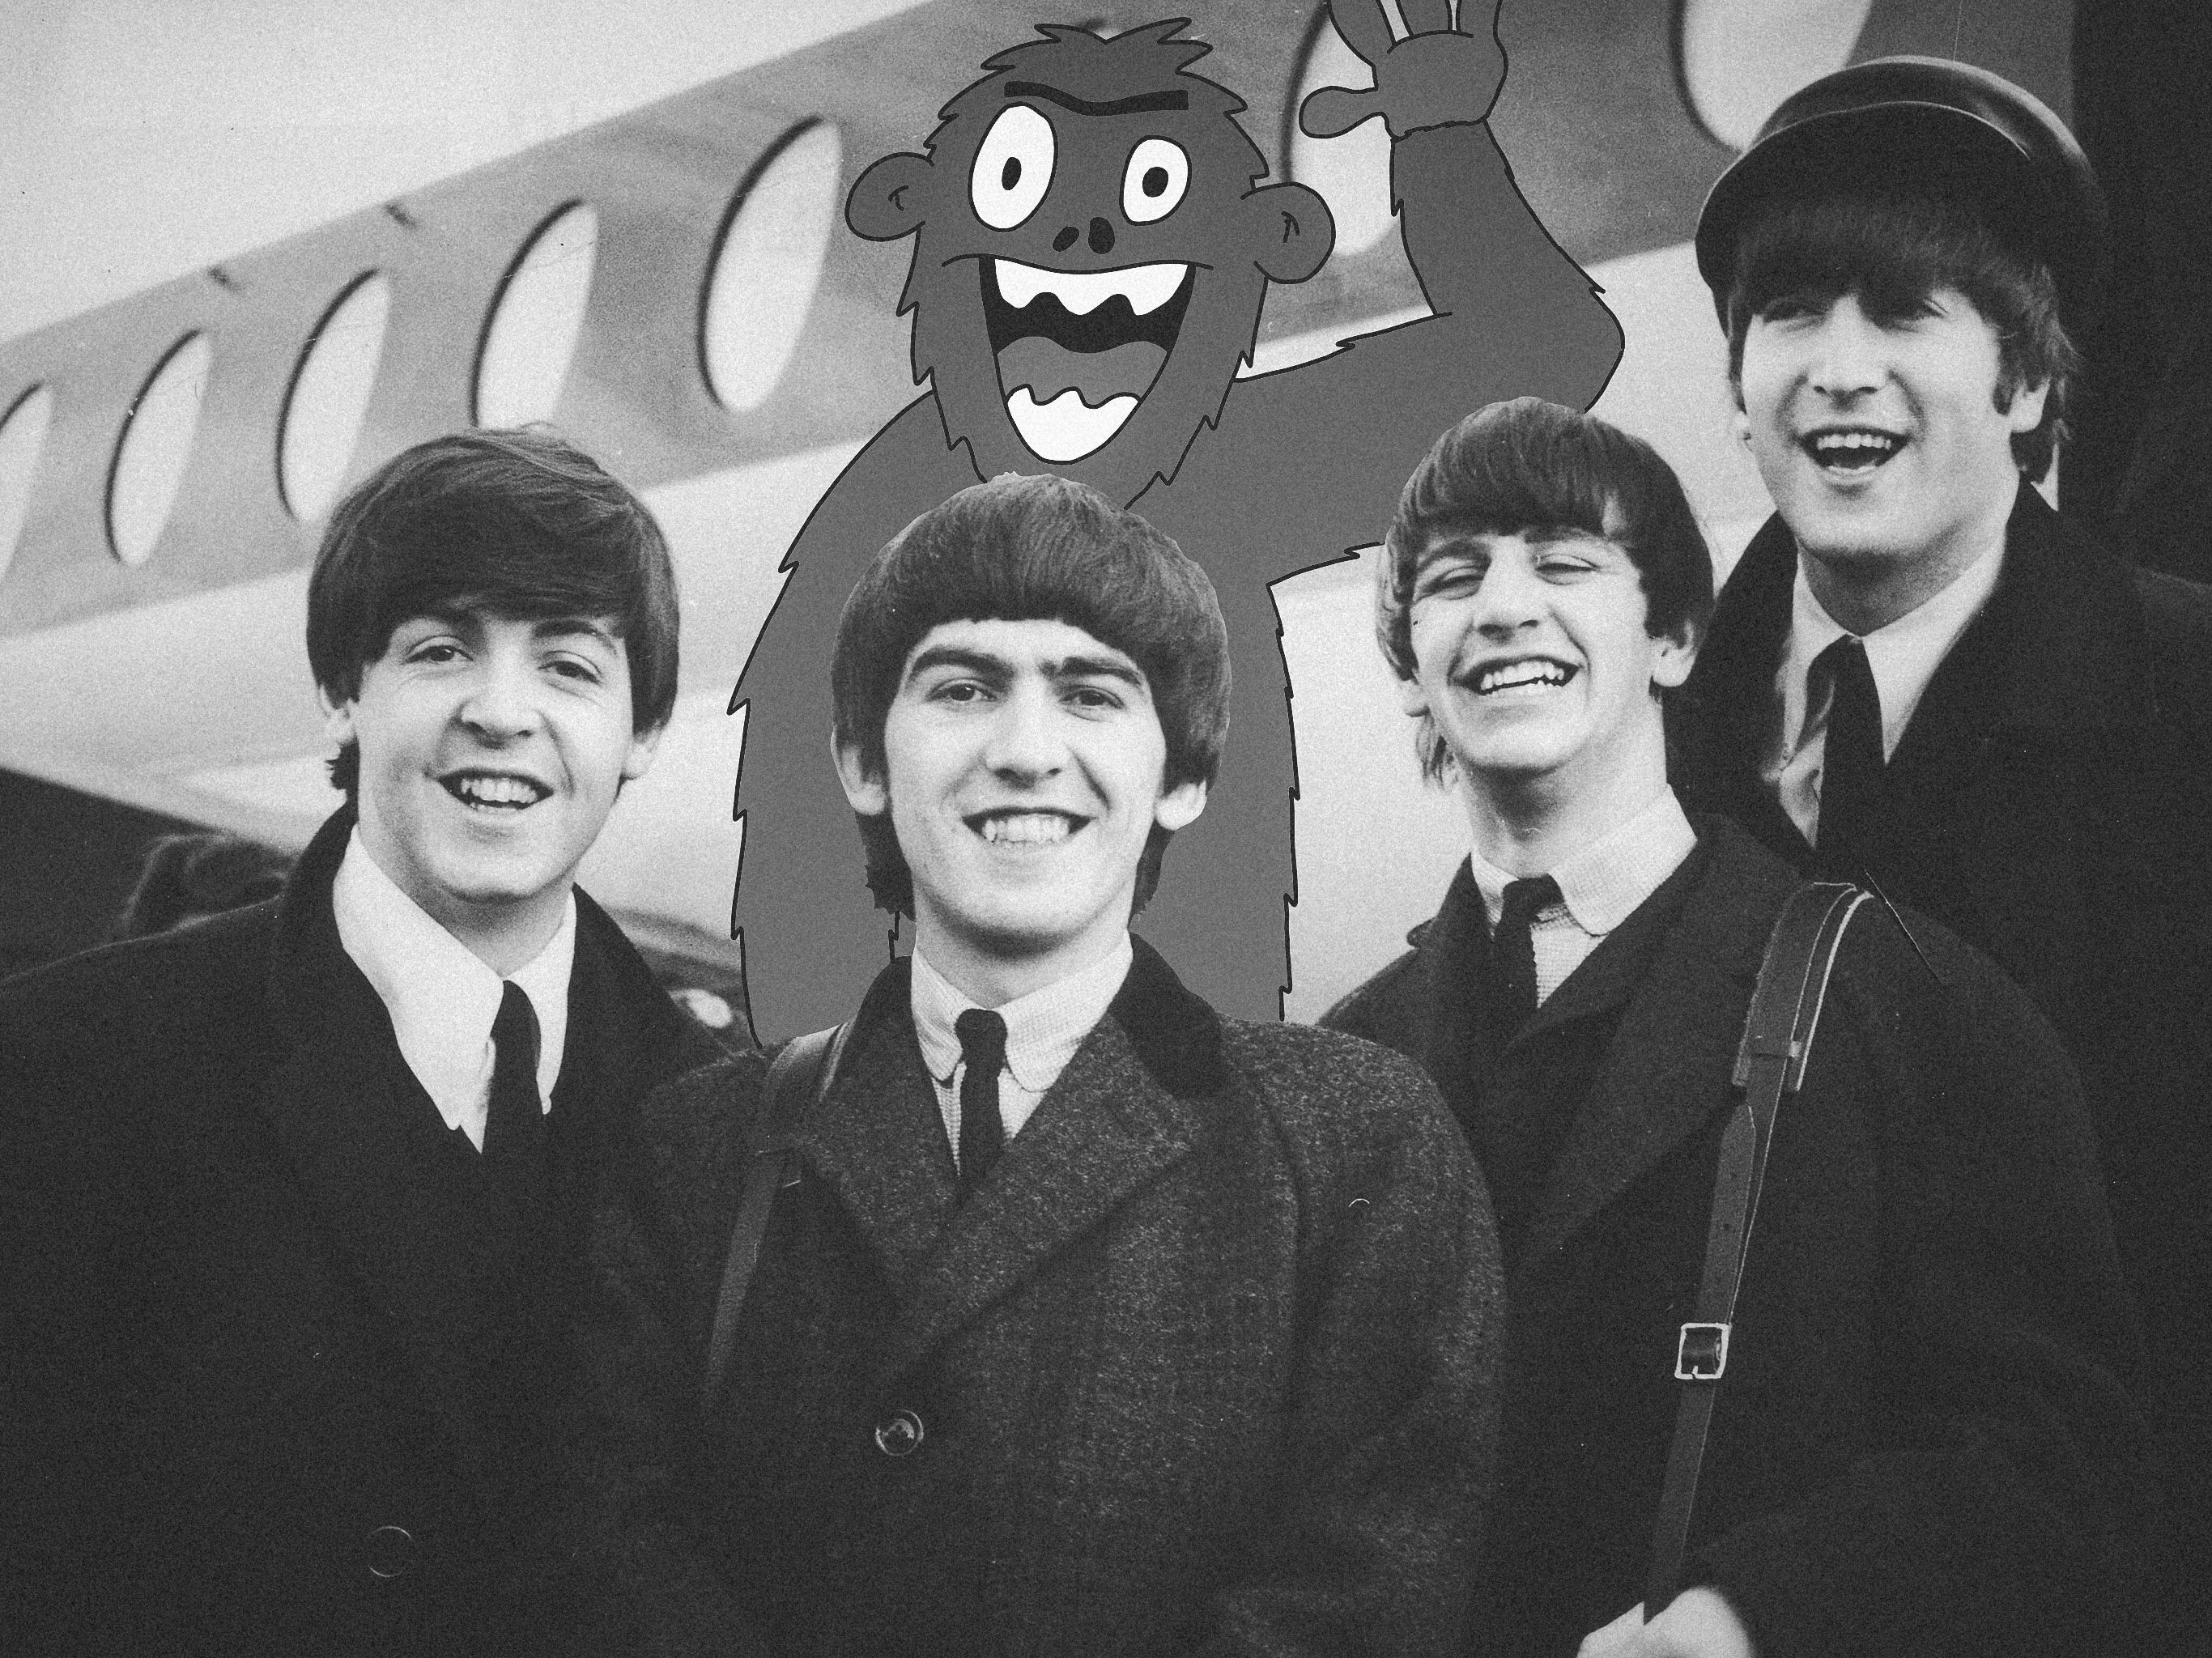 the tragic tale of the fifth member of the beatles